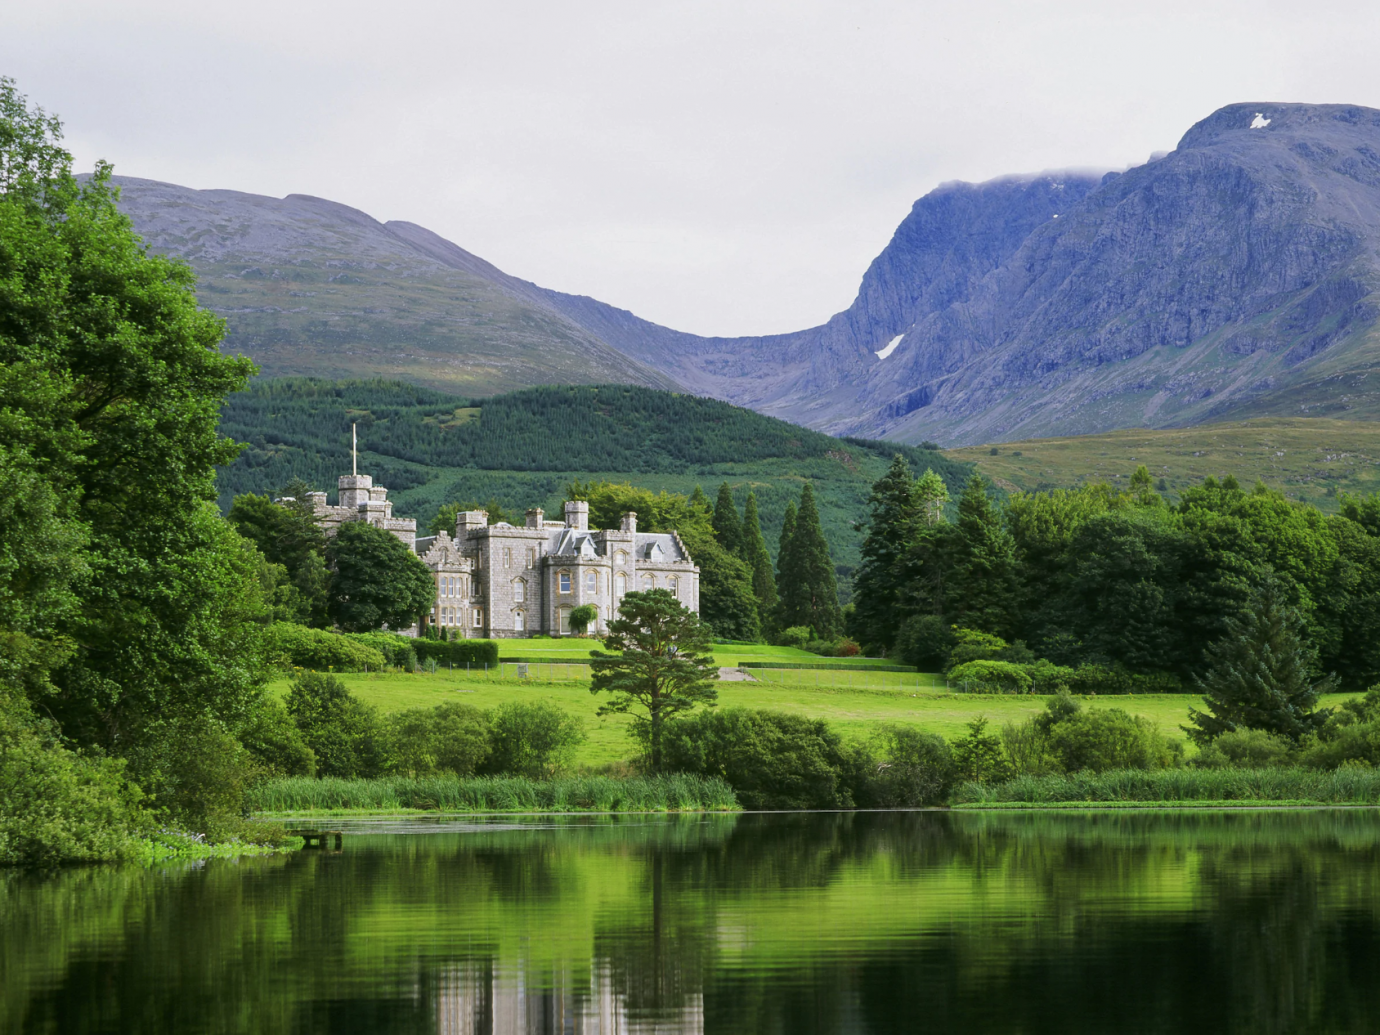 View of Inverlochy Castle